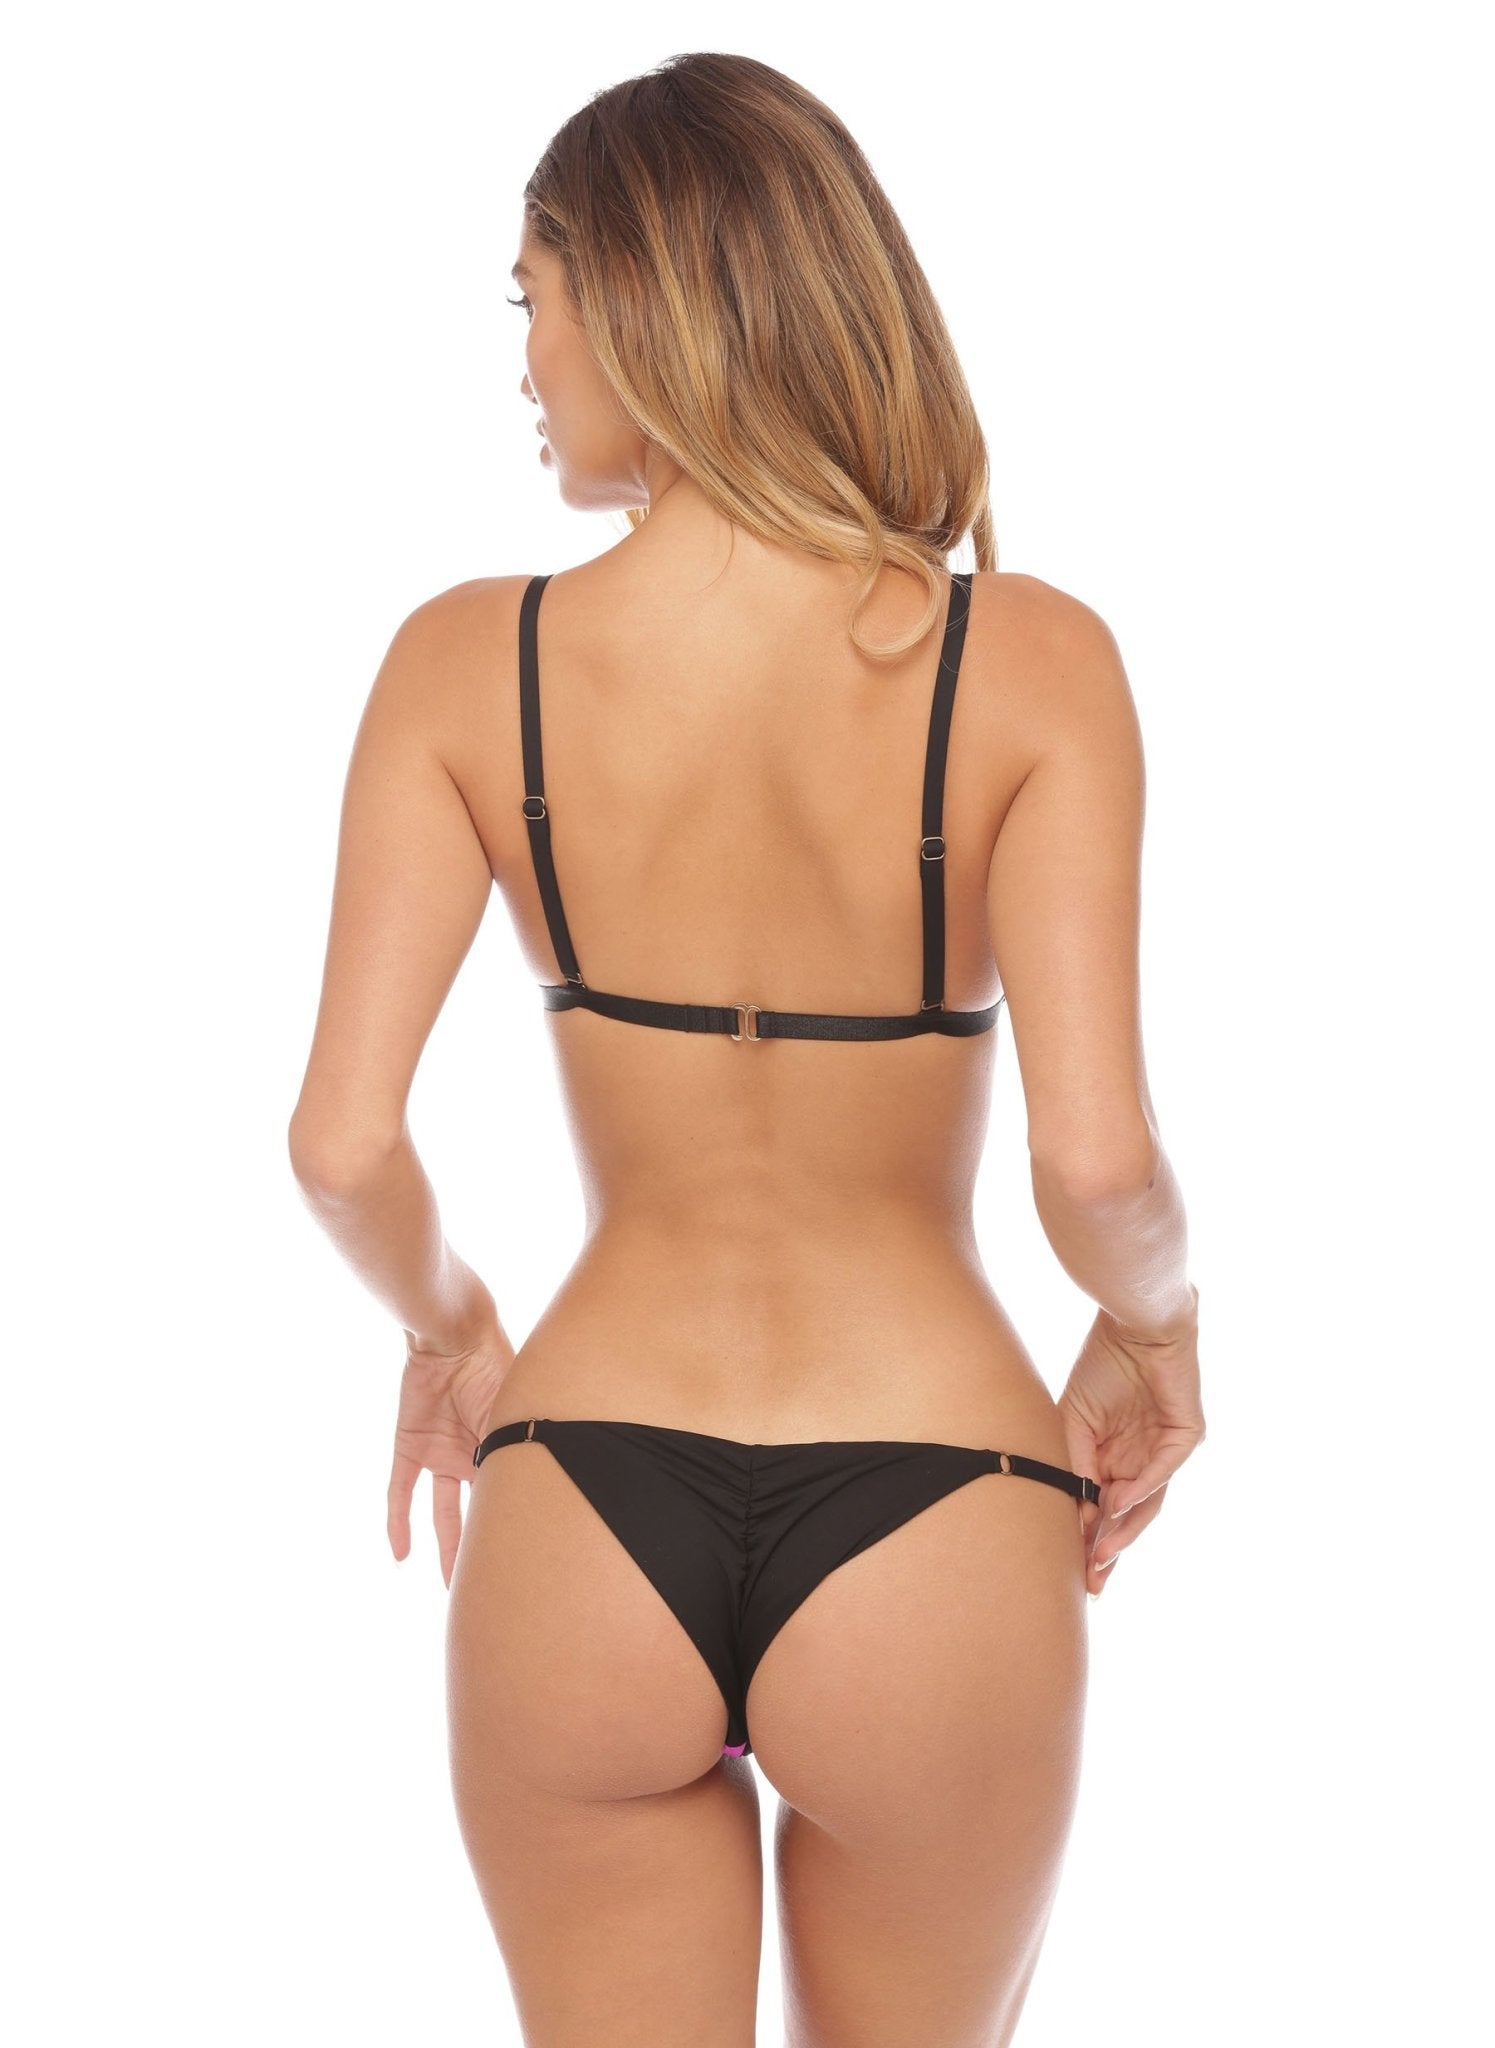 Jessica Bottom - Cheeky - Black - Salty Mermaid Swim